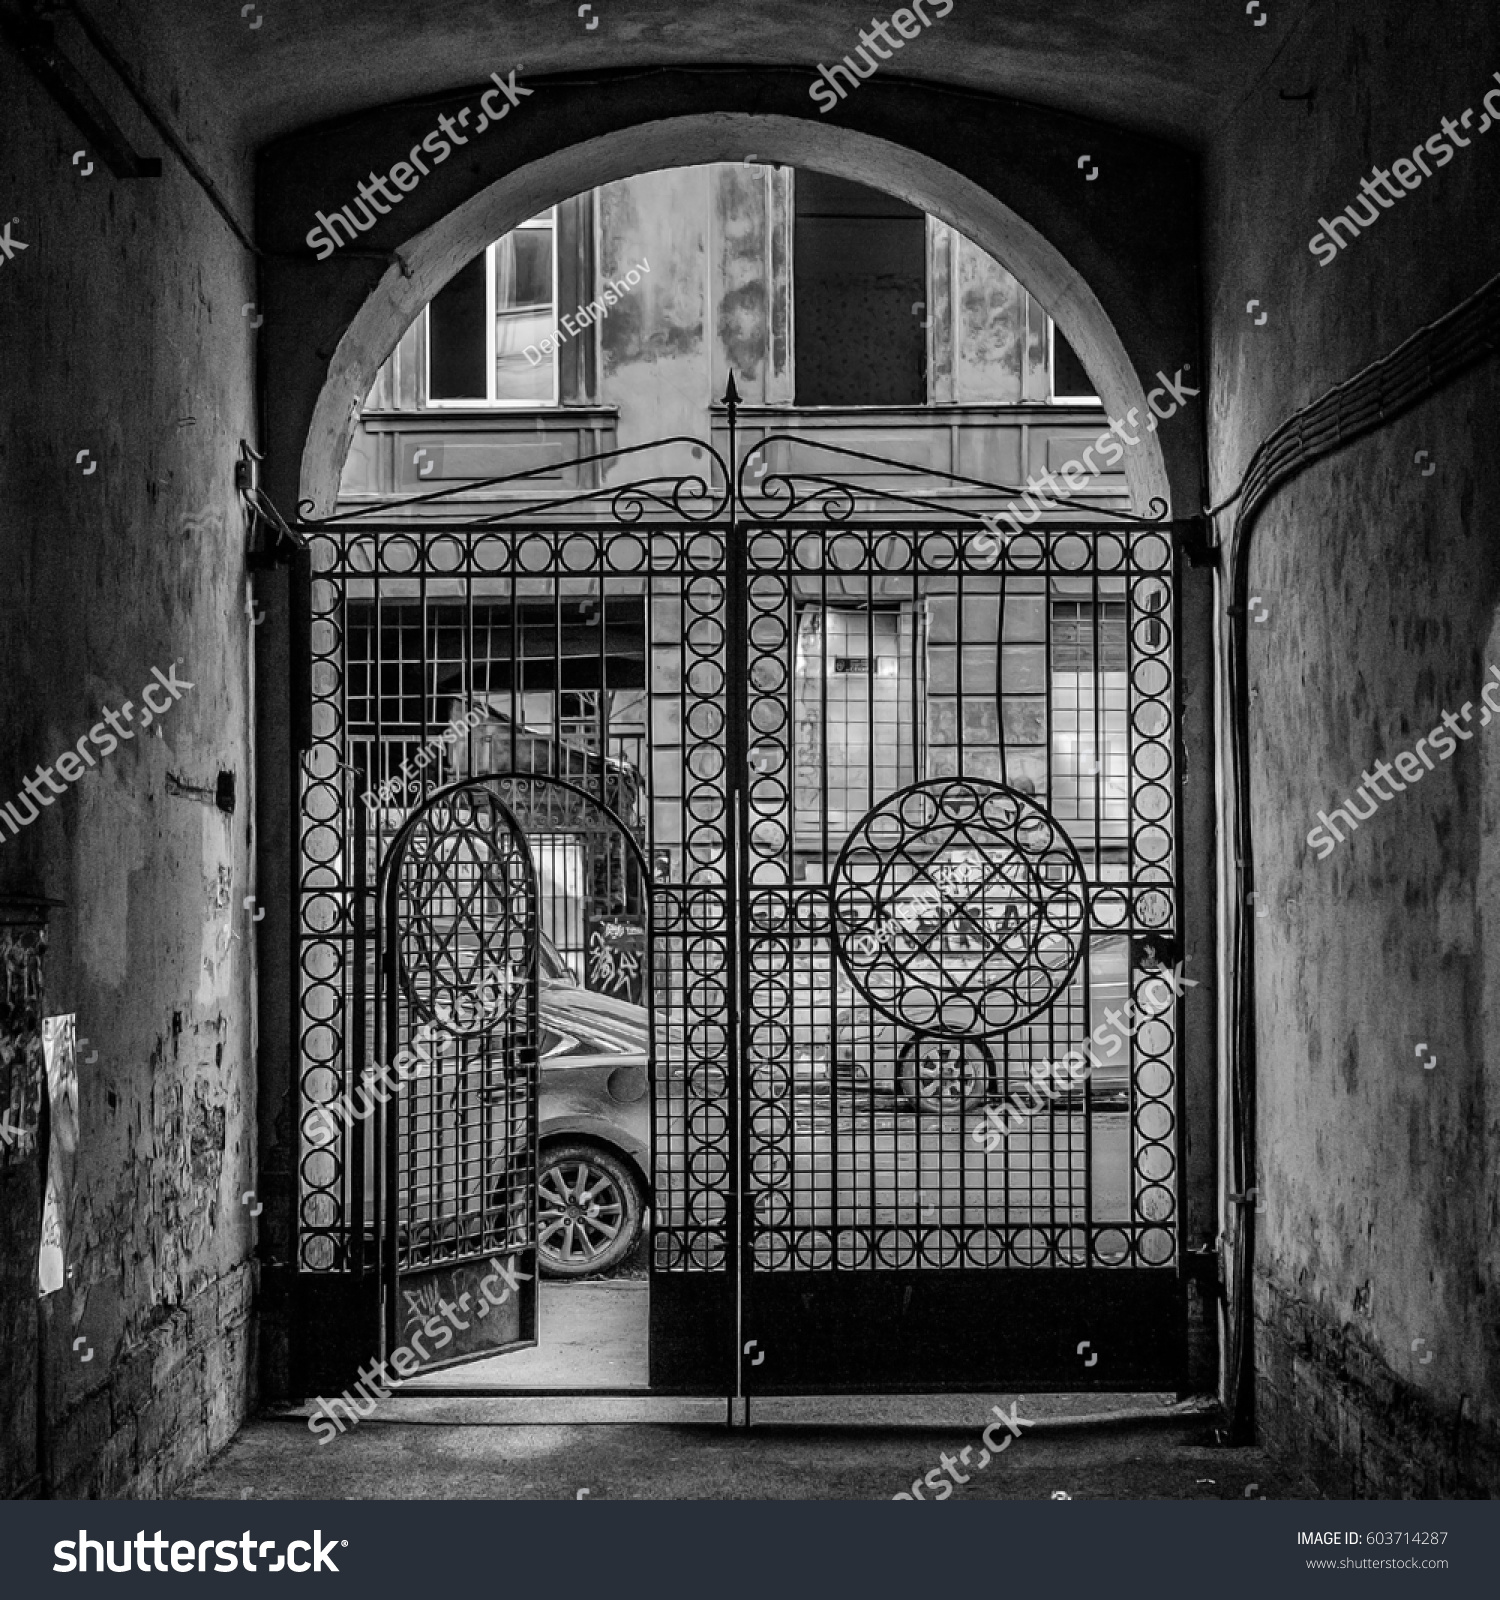 Vintage gates of small courtyard with forged lattice